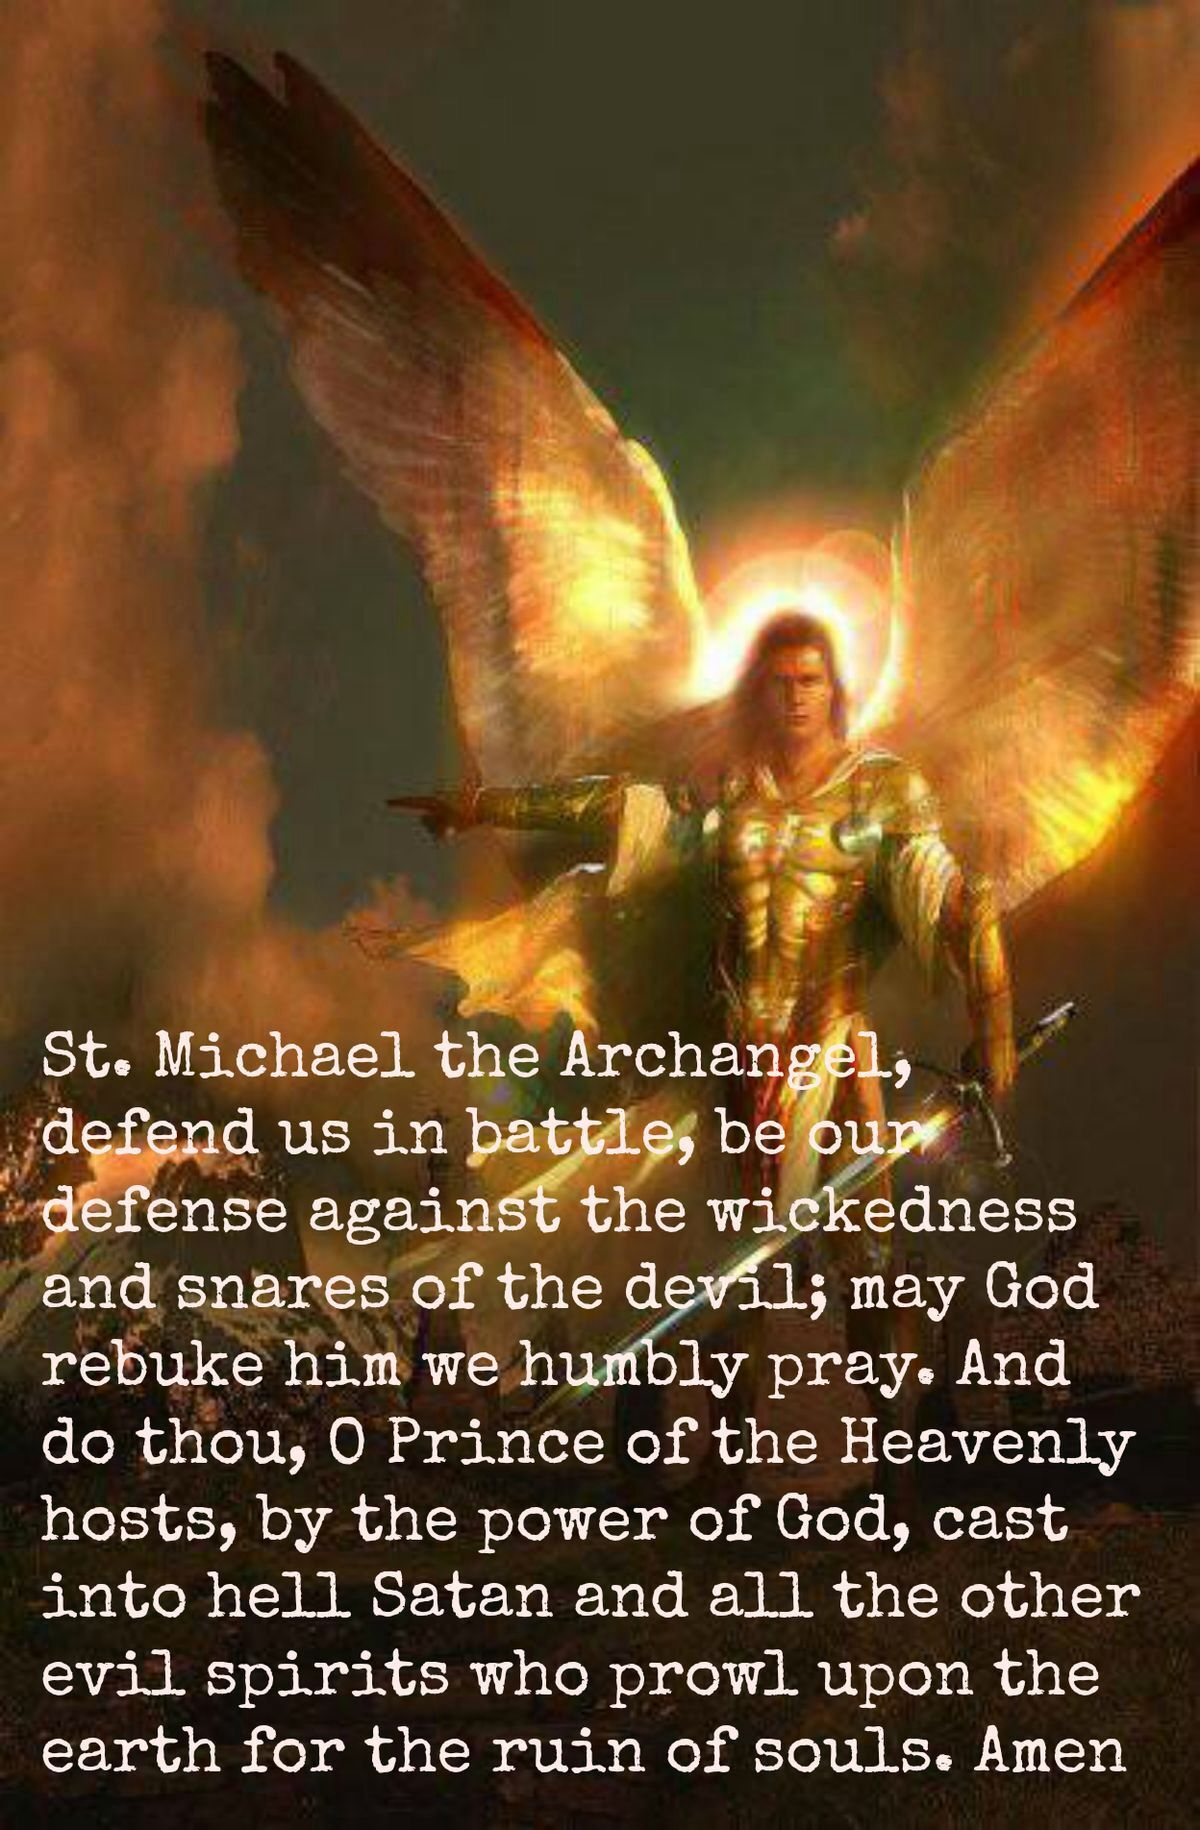 Feast Day of the Archangels